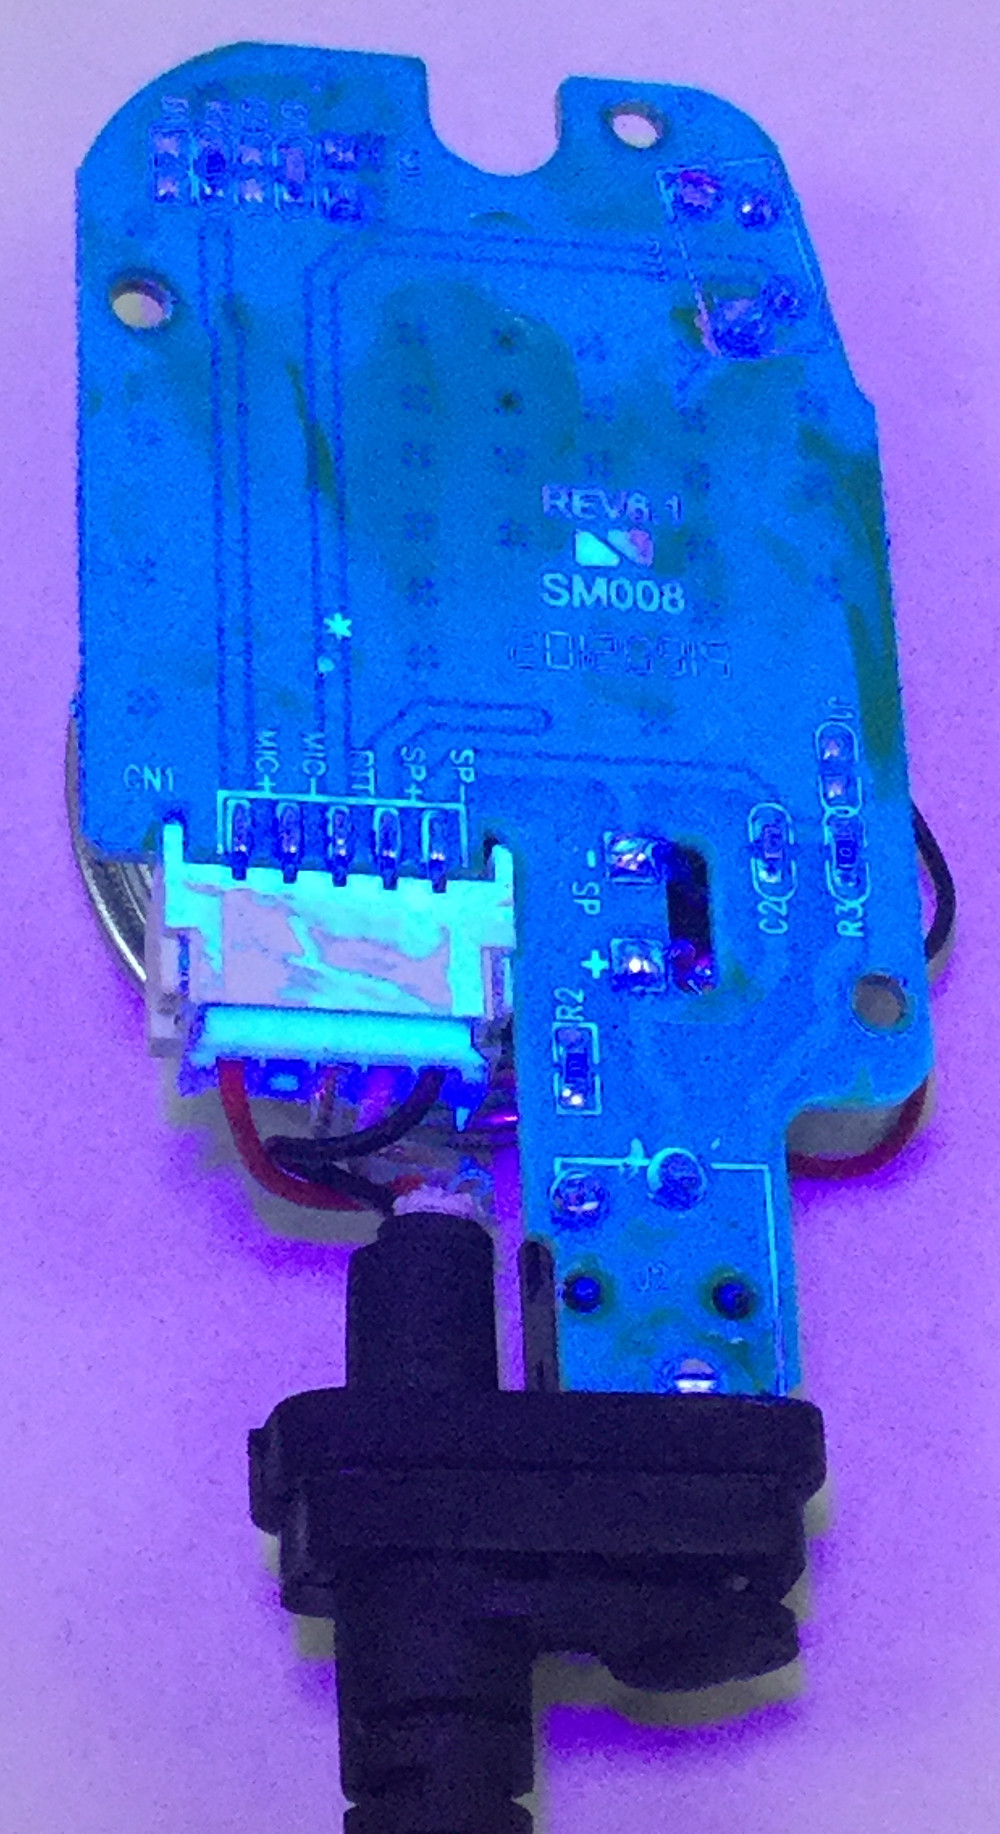 Midland PTT with conformal coating